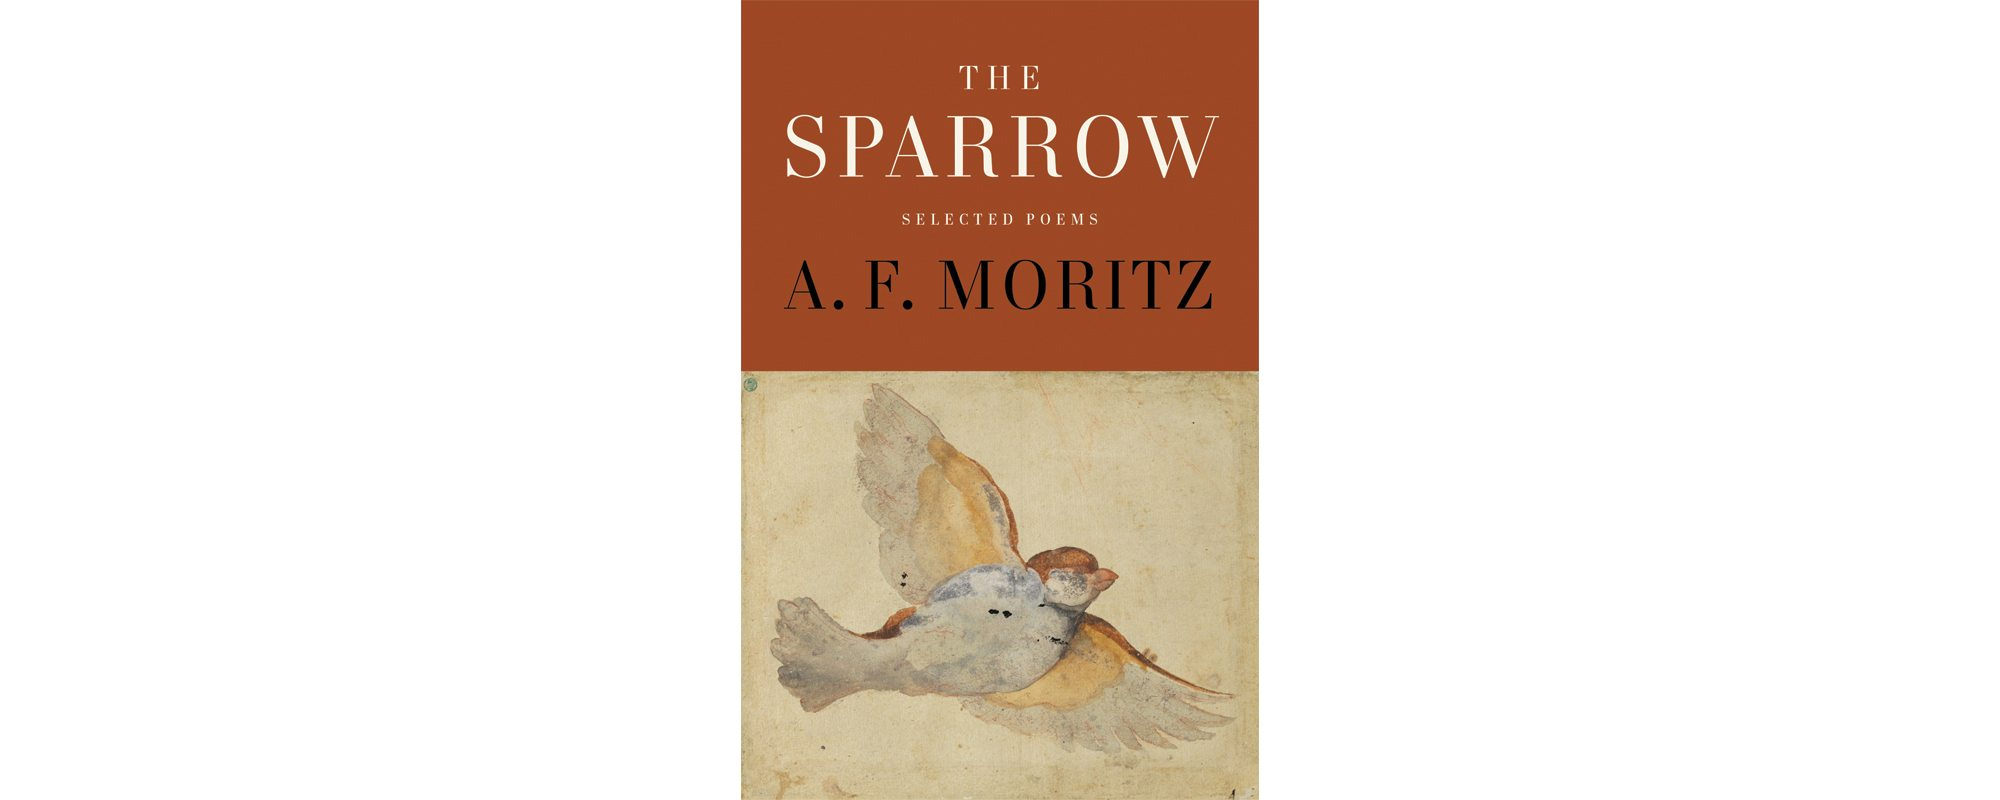 The Sparrow: Selected Poems by A.F. Moritz